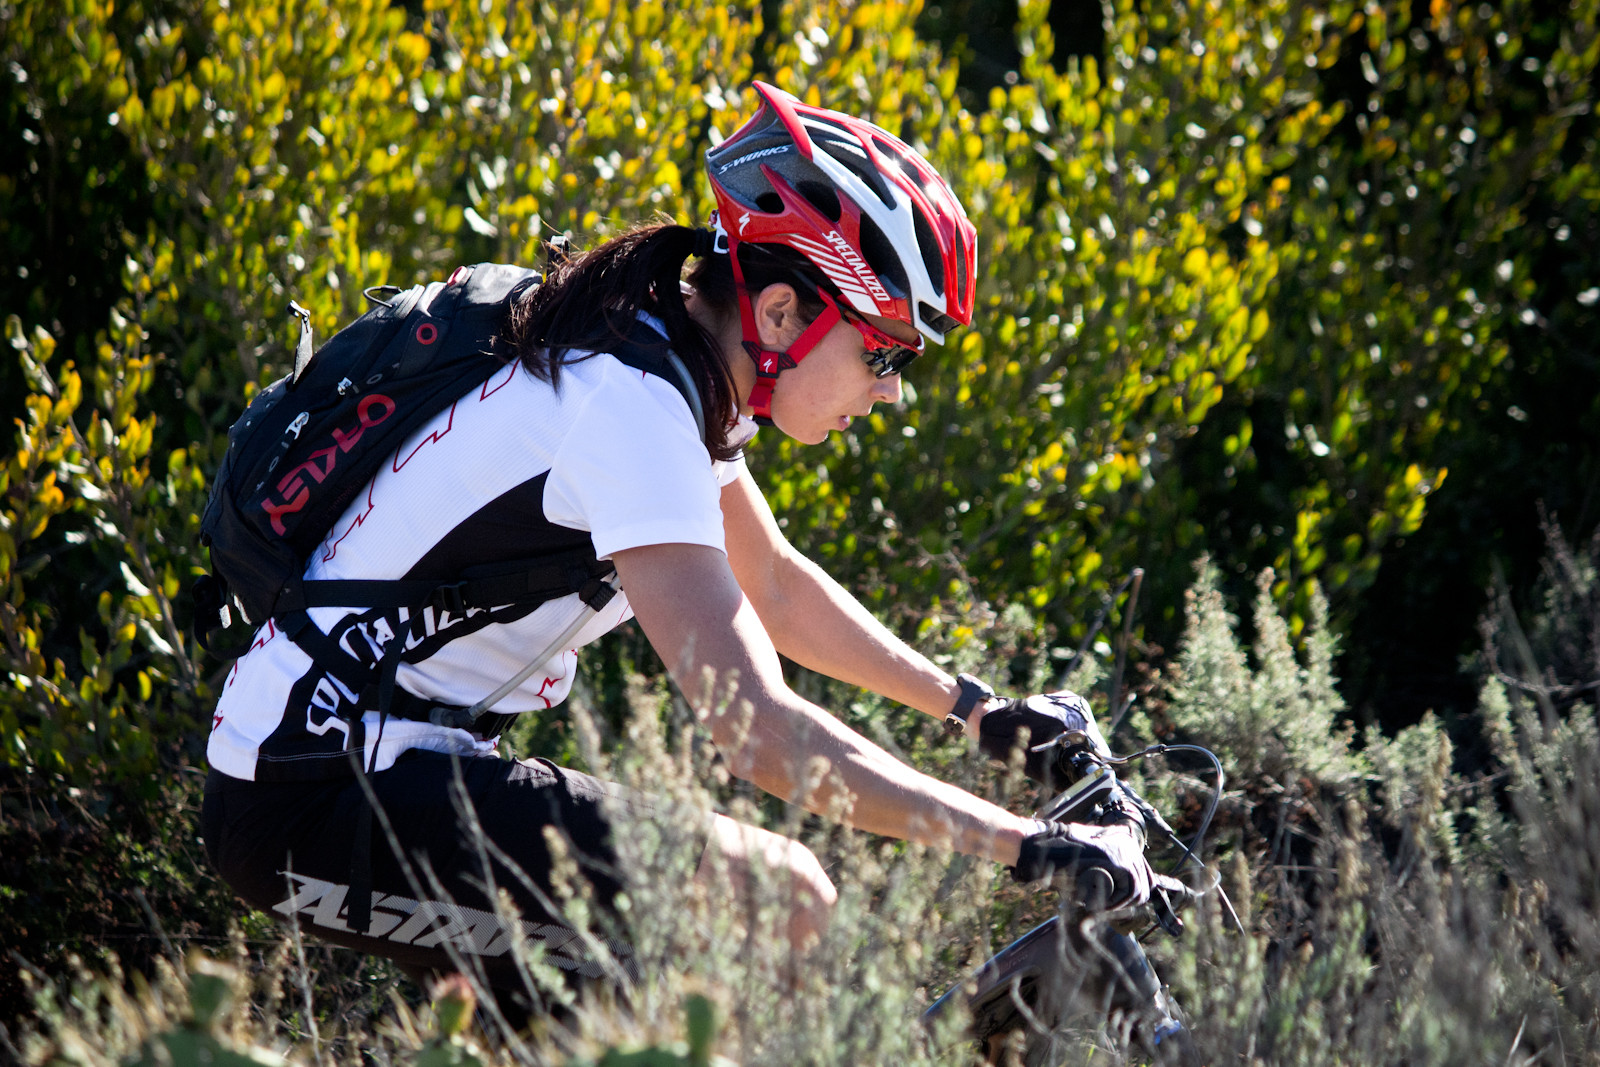 Anneke Beerten - Specialized A1 Ride Daze - In Memory of Burry Stander - Mountain Biking Pictures - Vital MTB